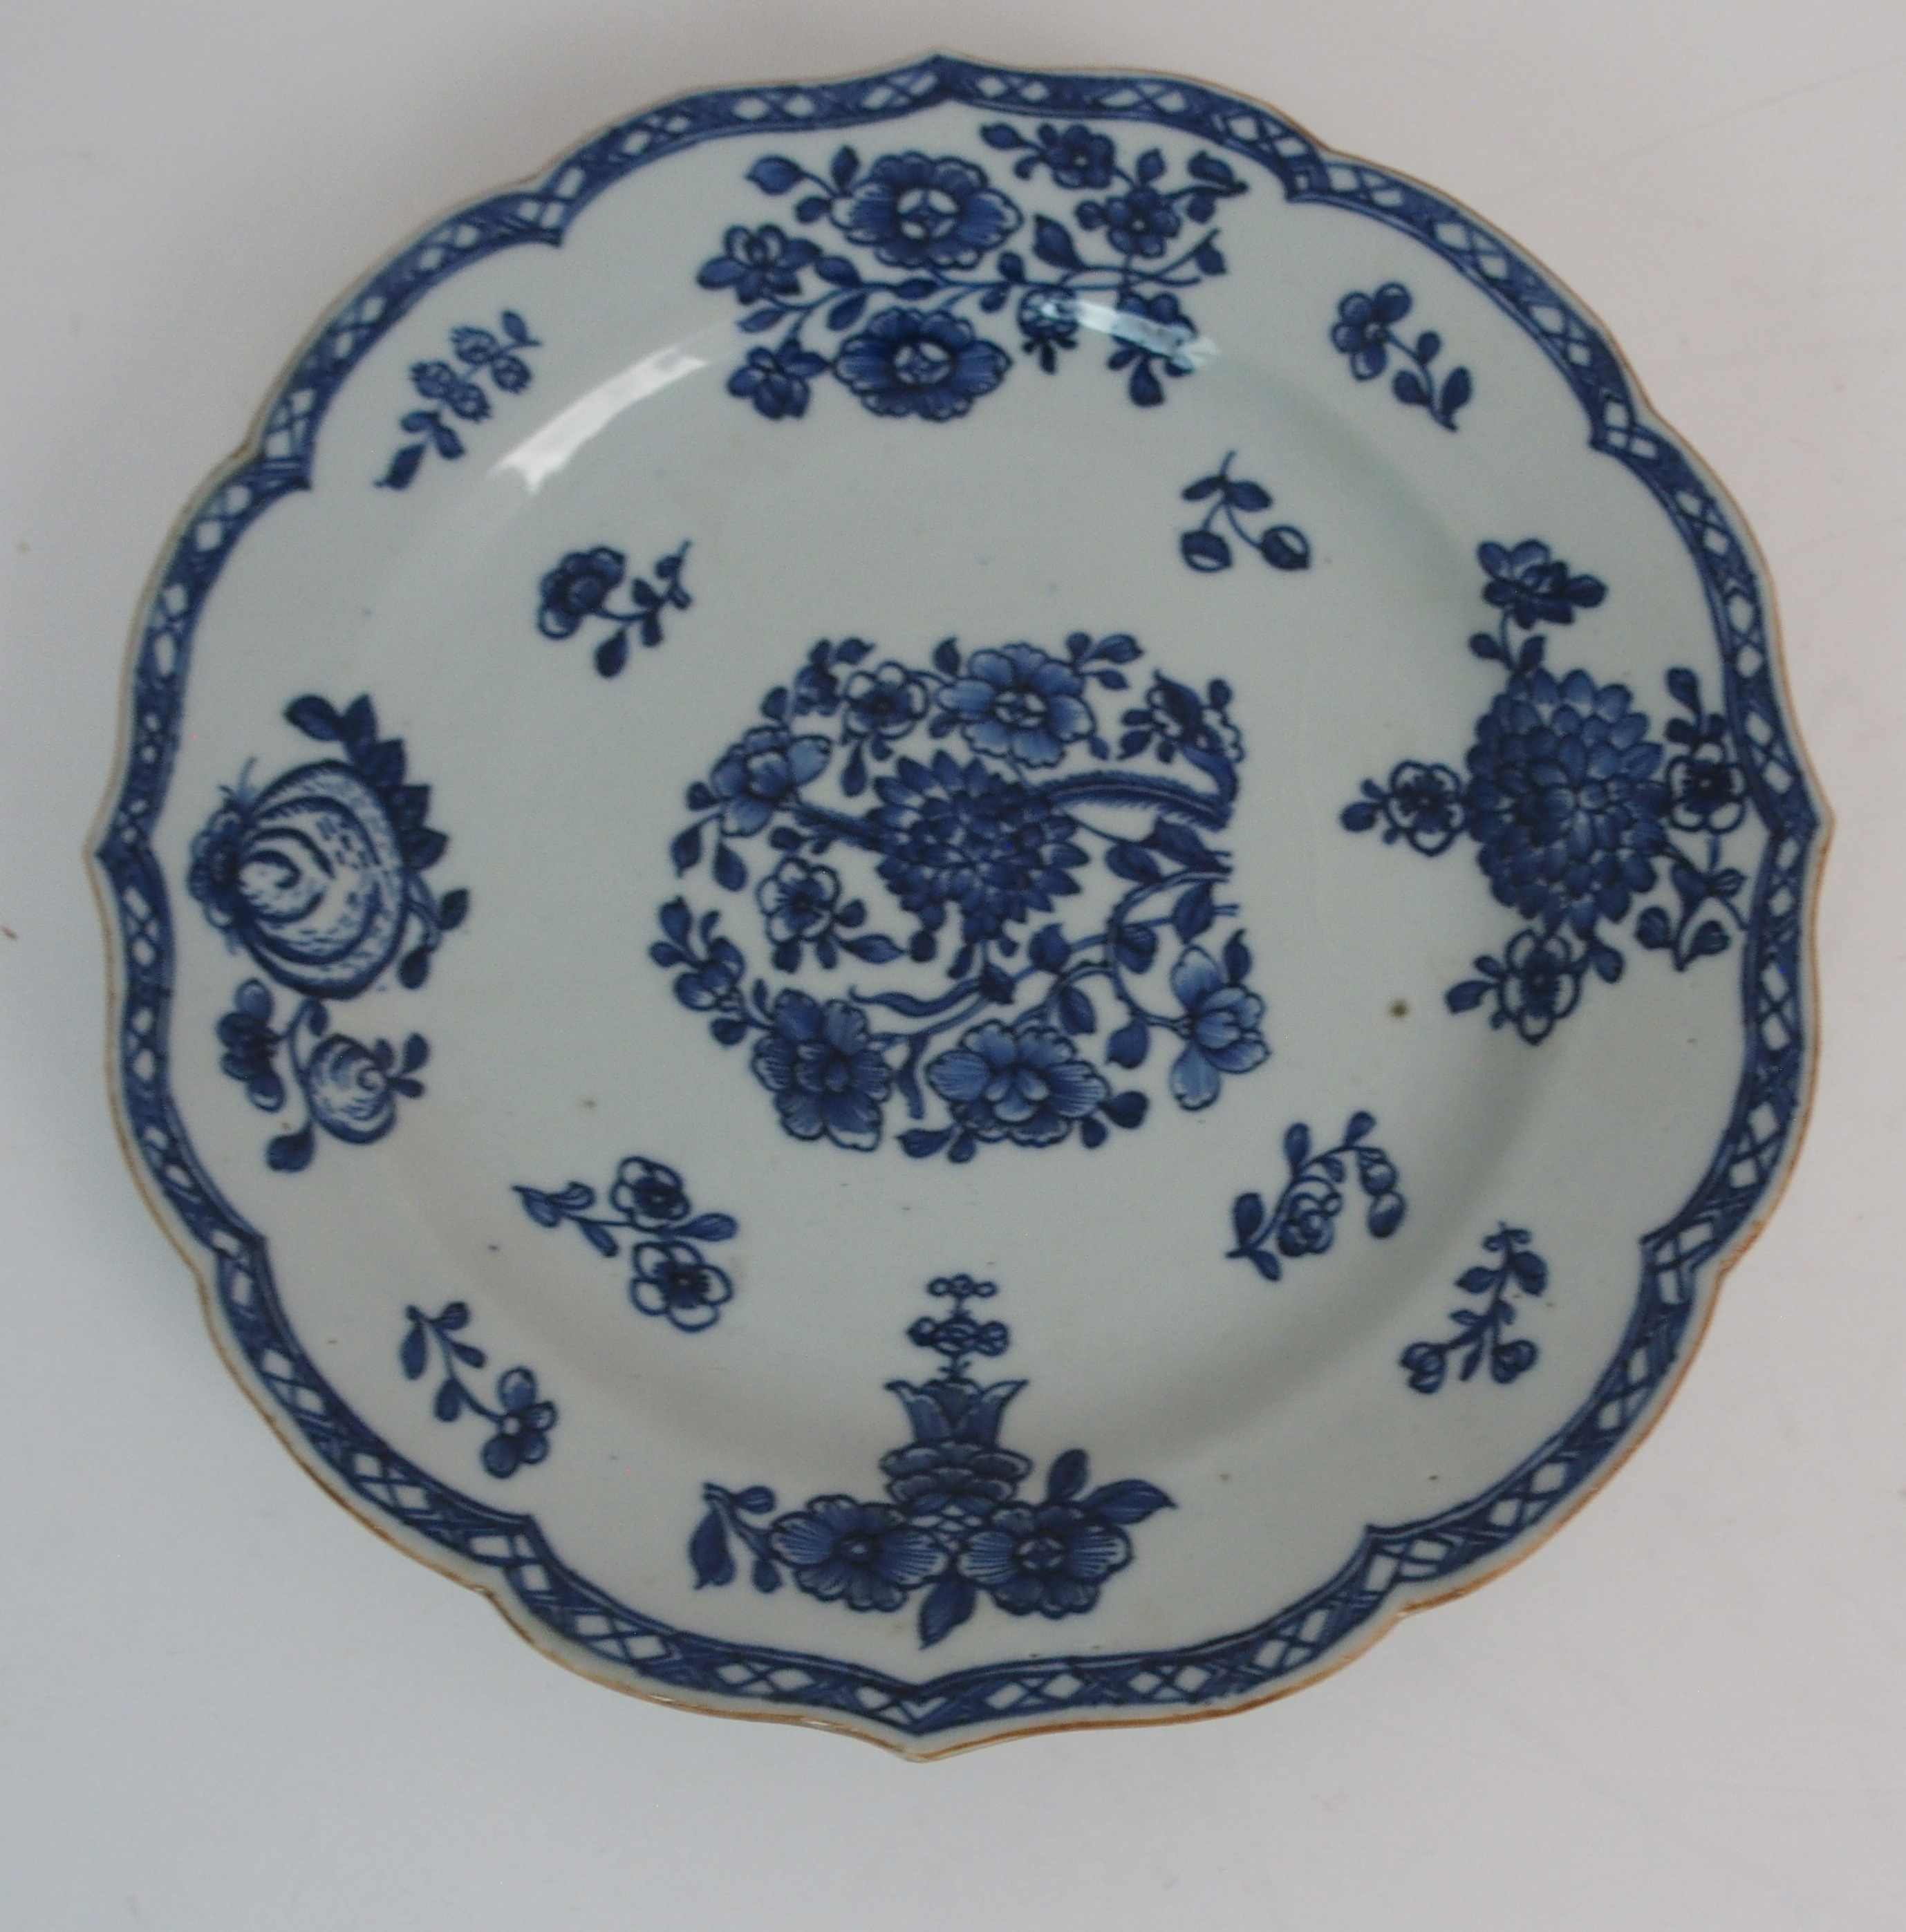 FIVE CHINESE EXPORT PLATES comprising; floral sprays, 22.5cm, Canton figures and precious objects, - Image 3 of 11